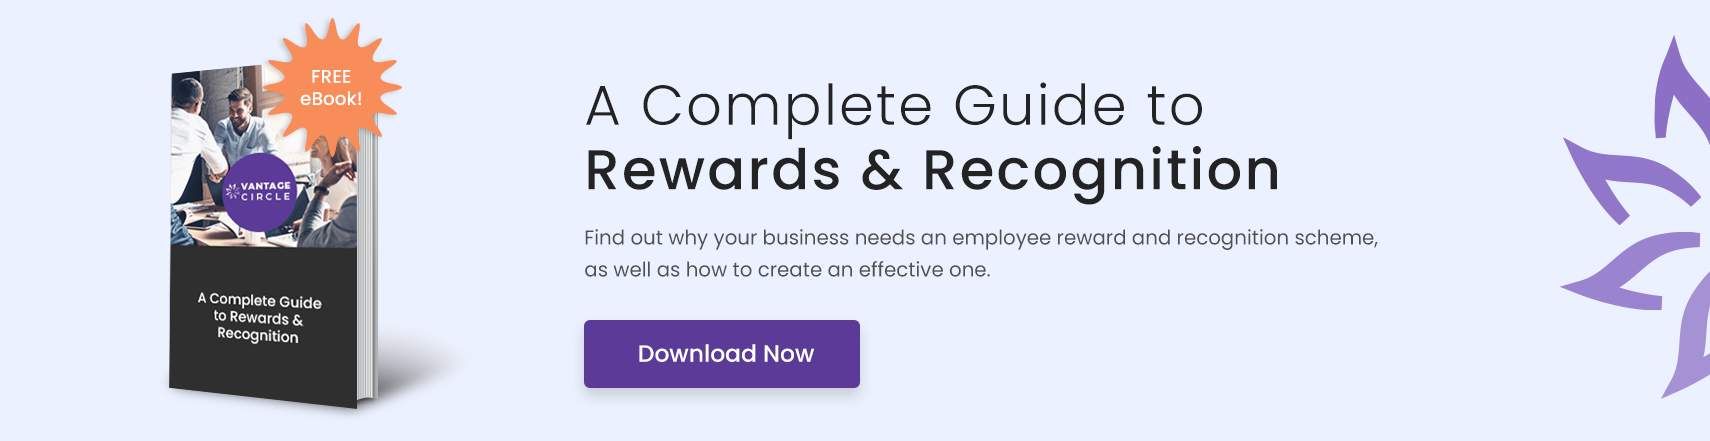 Emplopyee Rewards and Recognition eBook